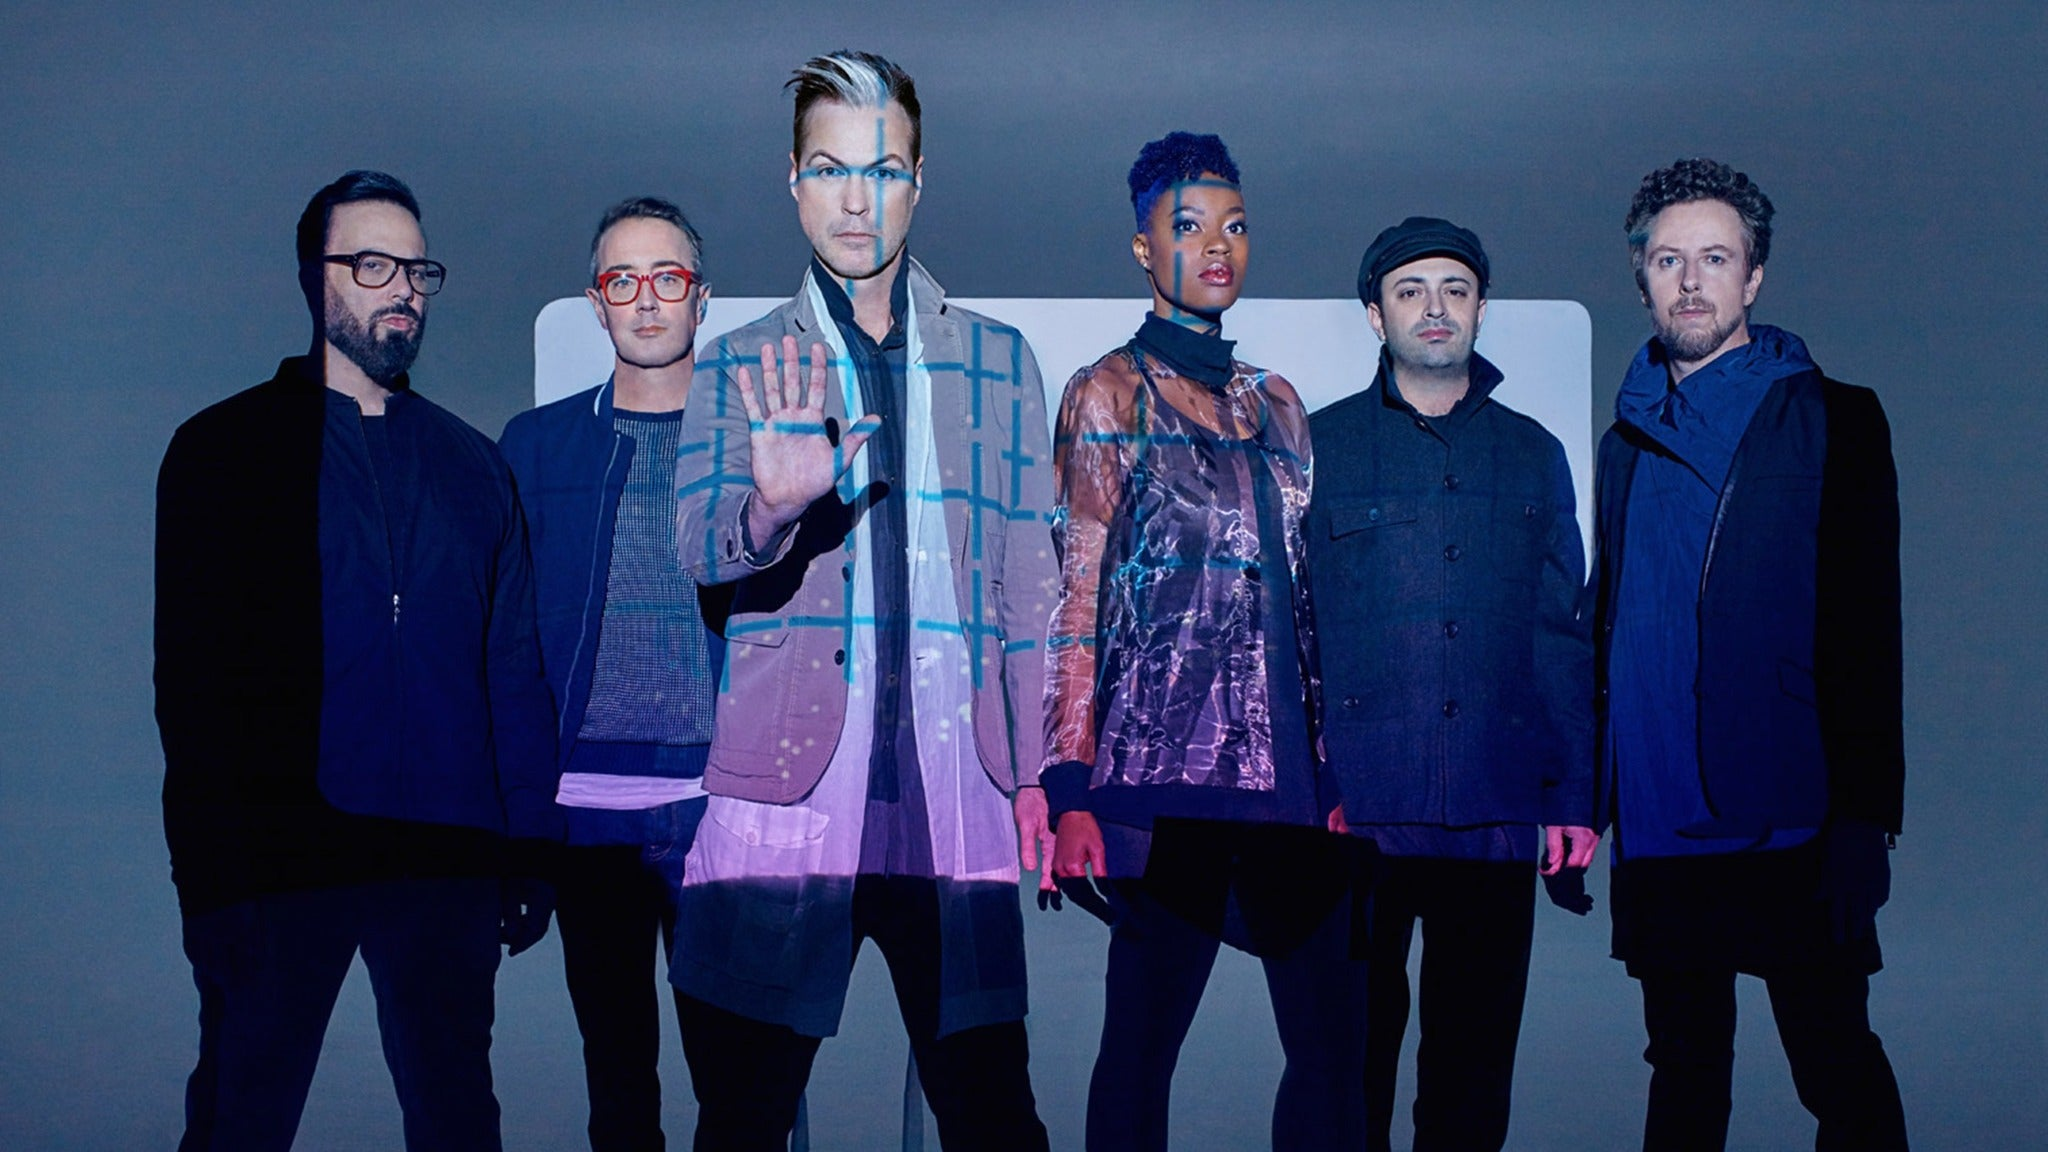 Fitz & The Tantrums - Wallingford, CT 06492